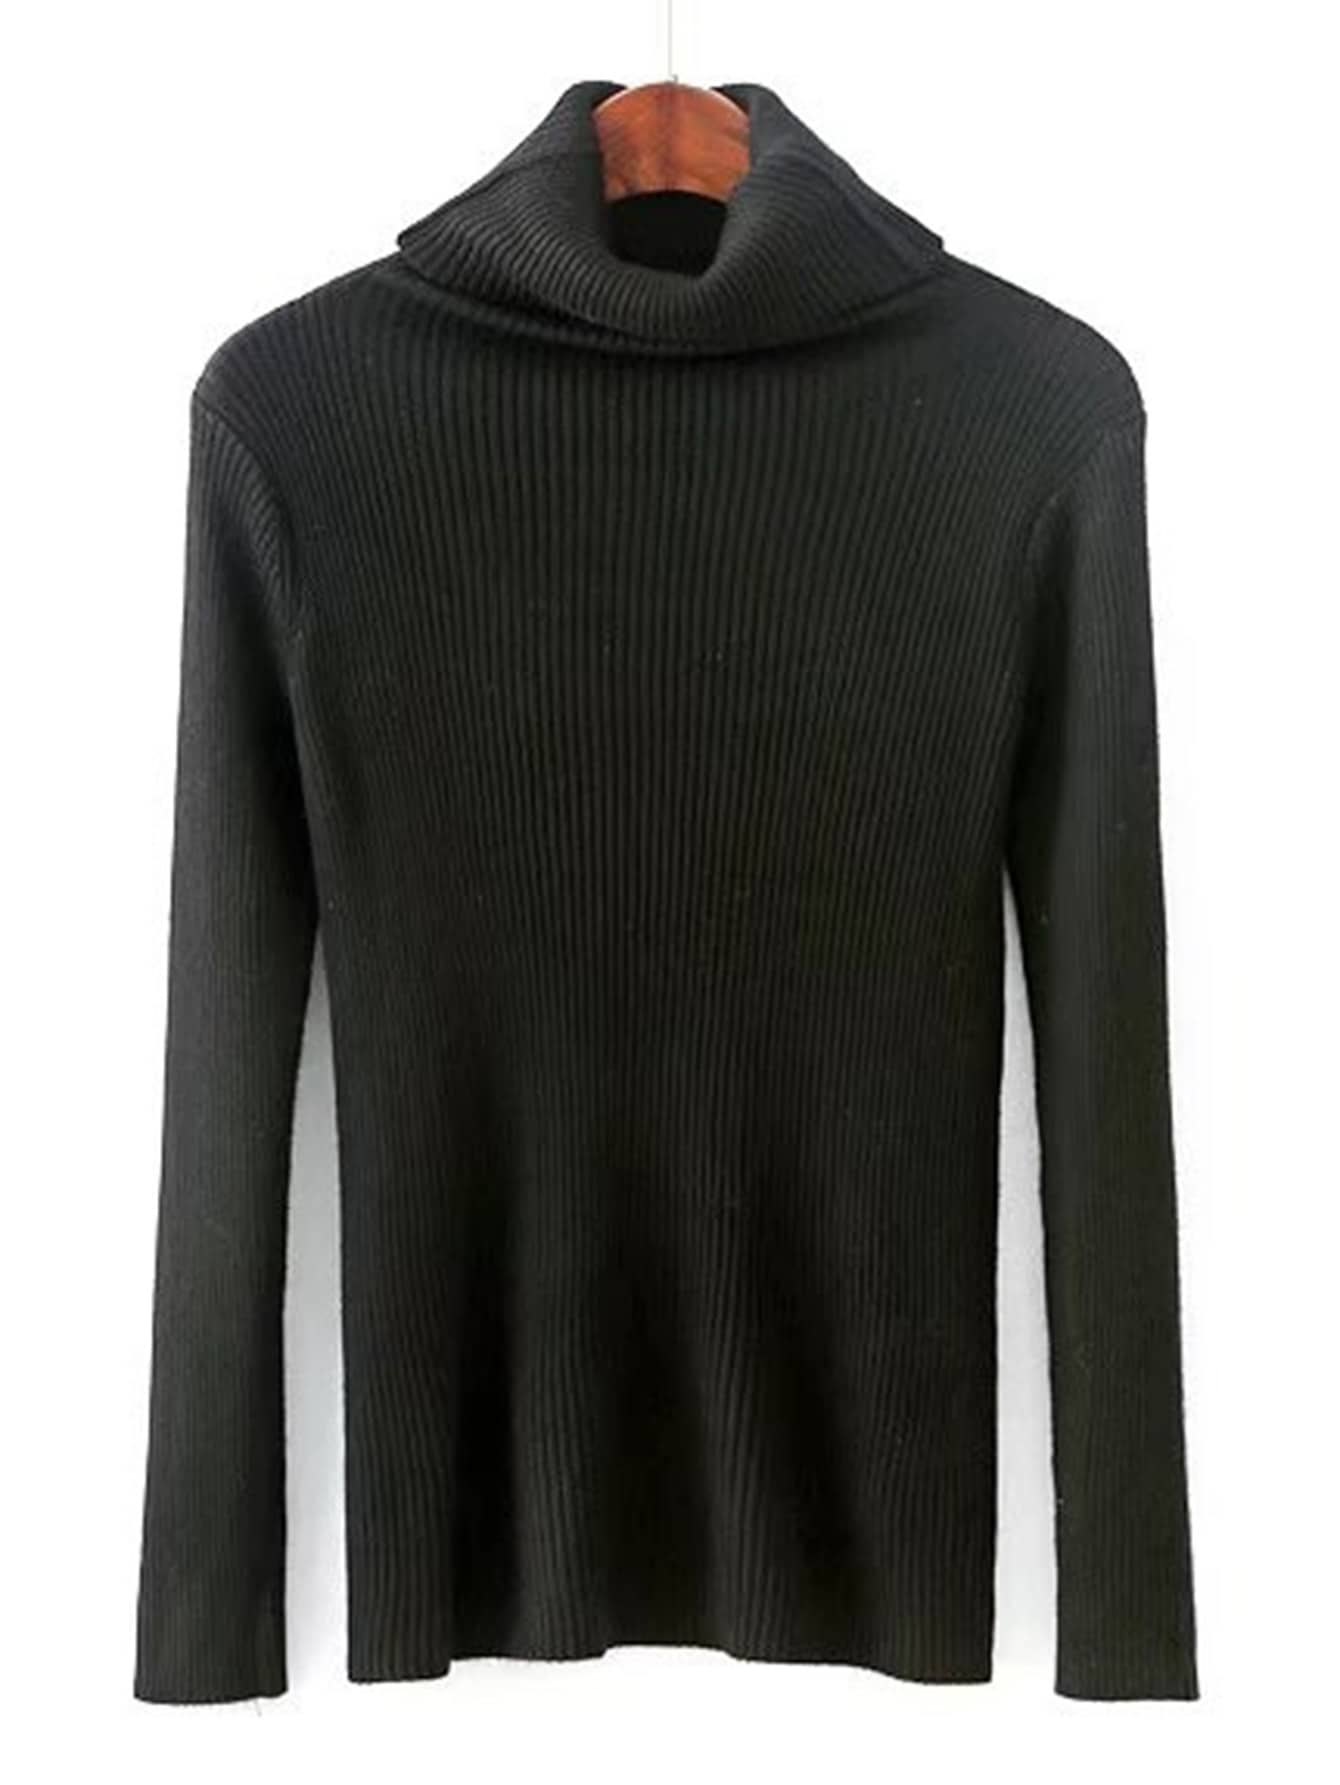 Ribbed Knit Turtleneck Knitwear sweater170927204